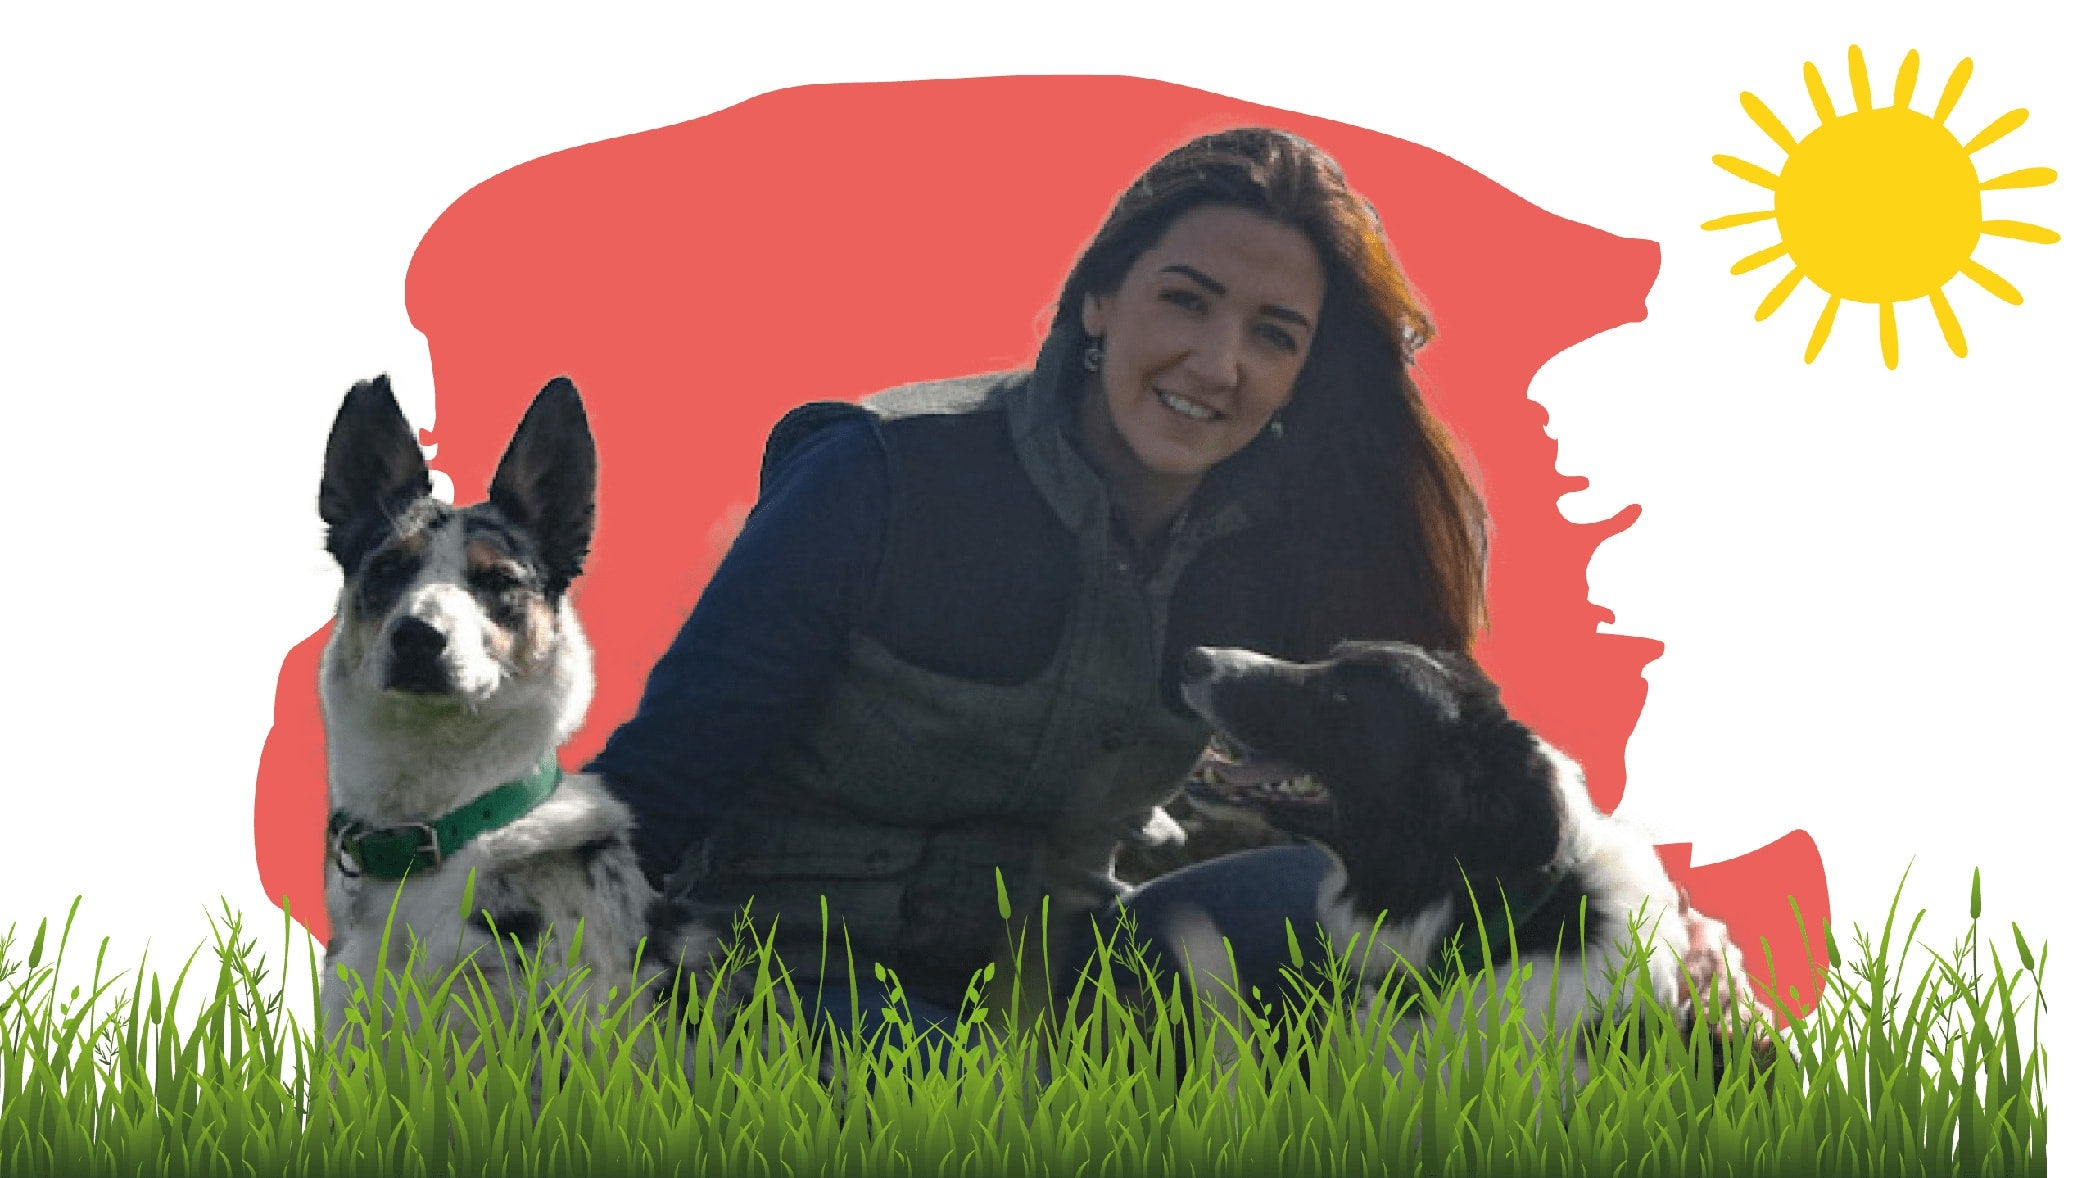 Image of founder Joanne with her two dogs